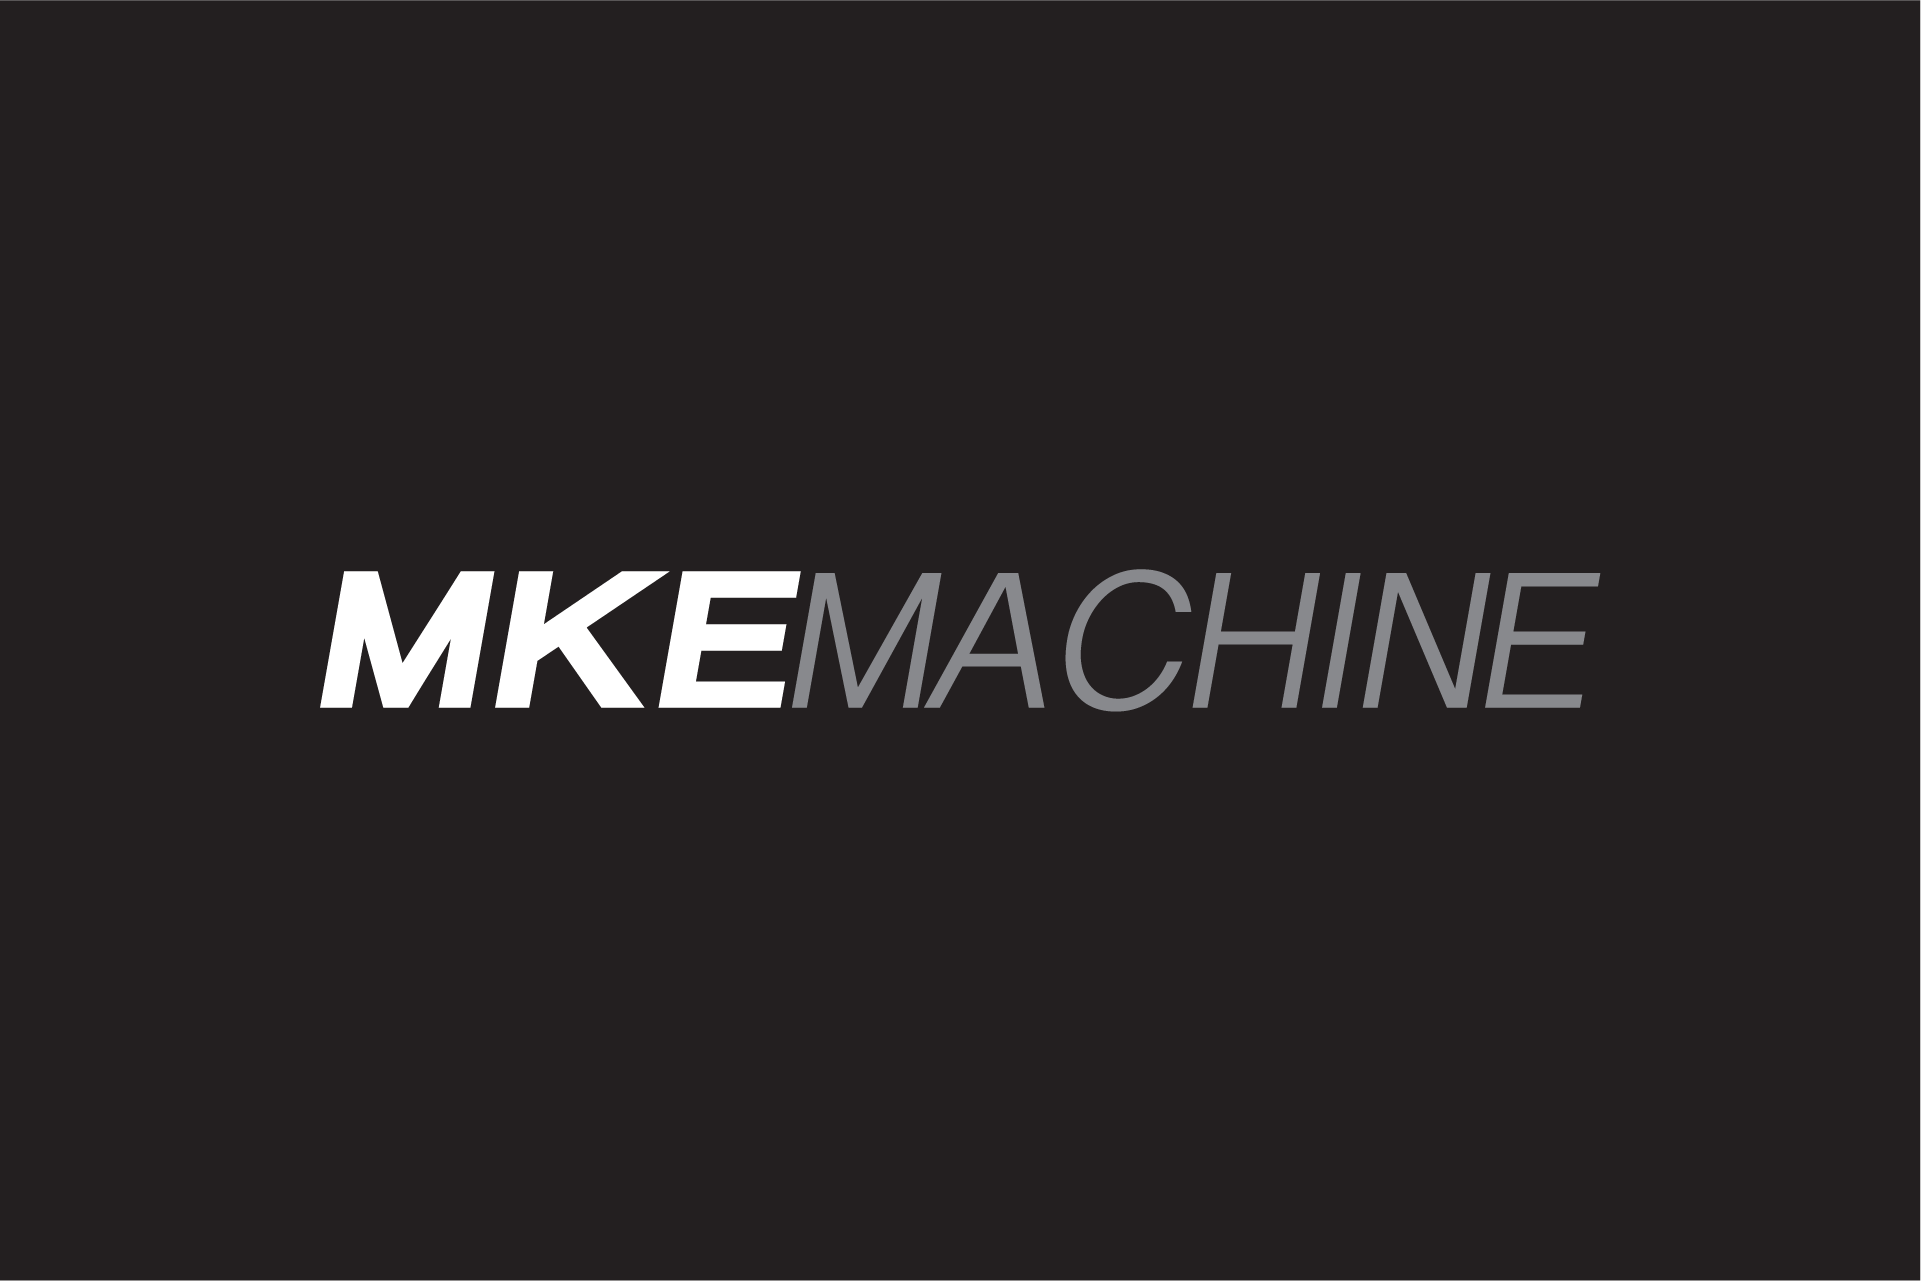 MKE Machine Logo Design Color Theory 8